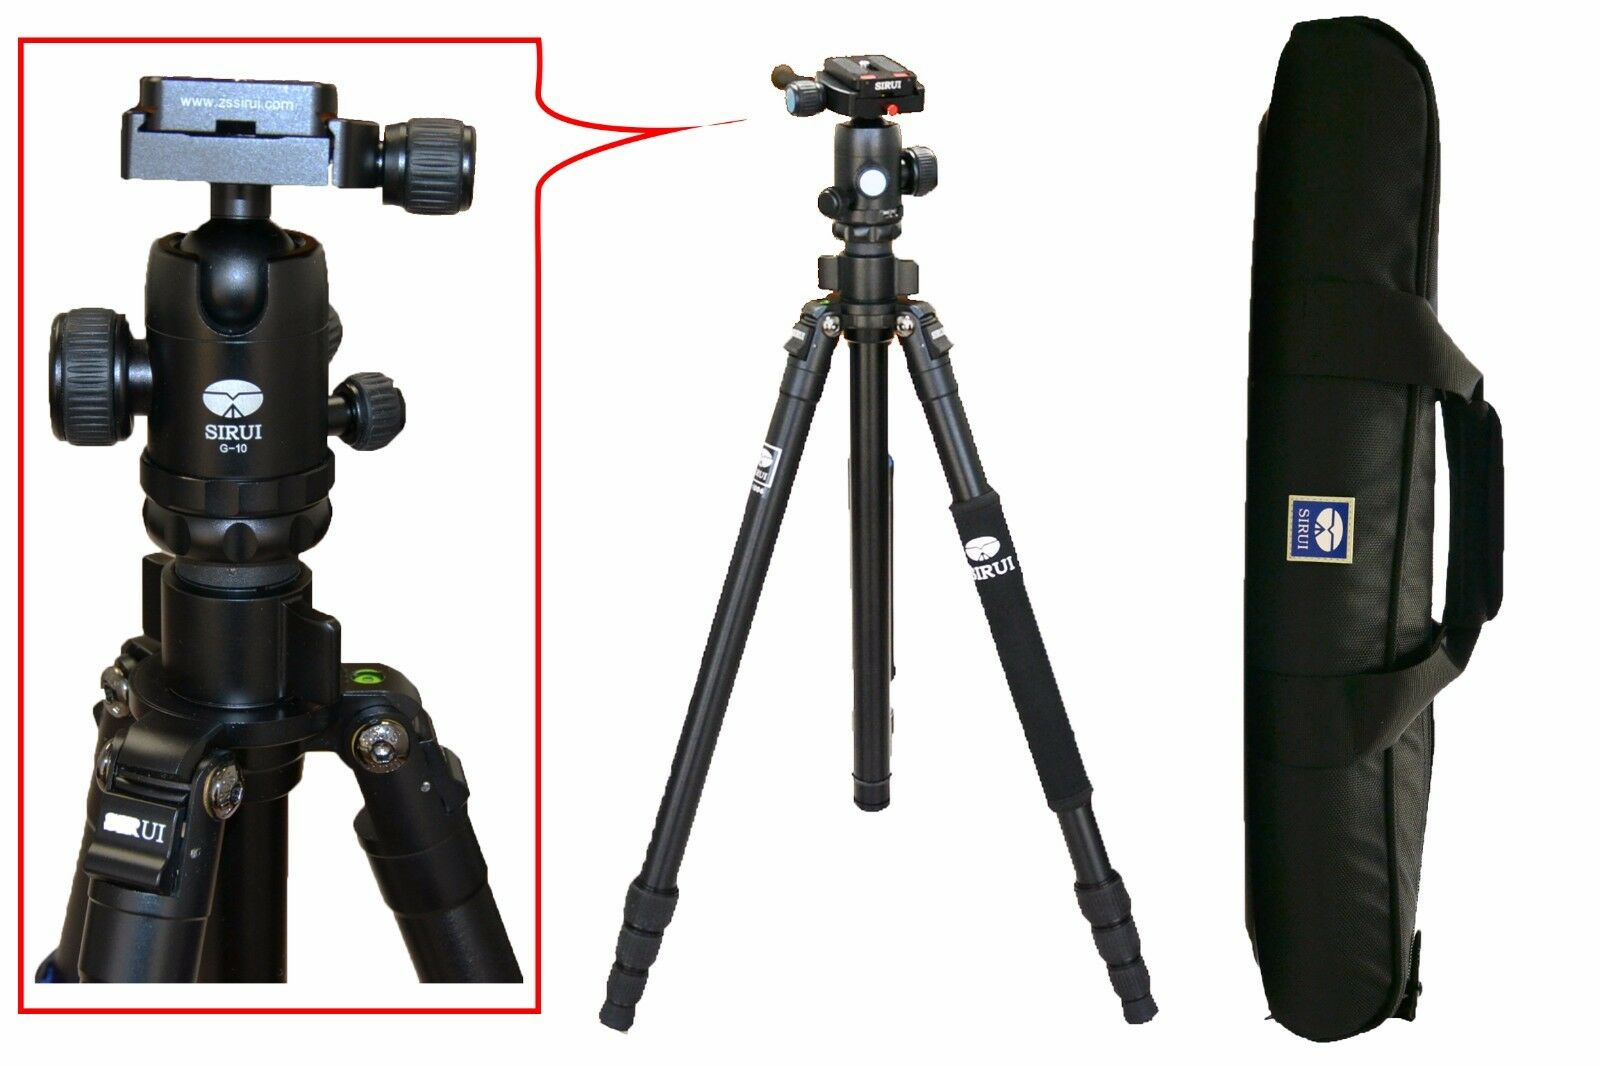 new r 1004 pro camera video tripod